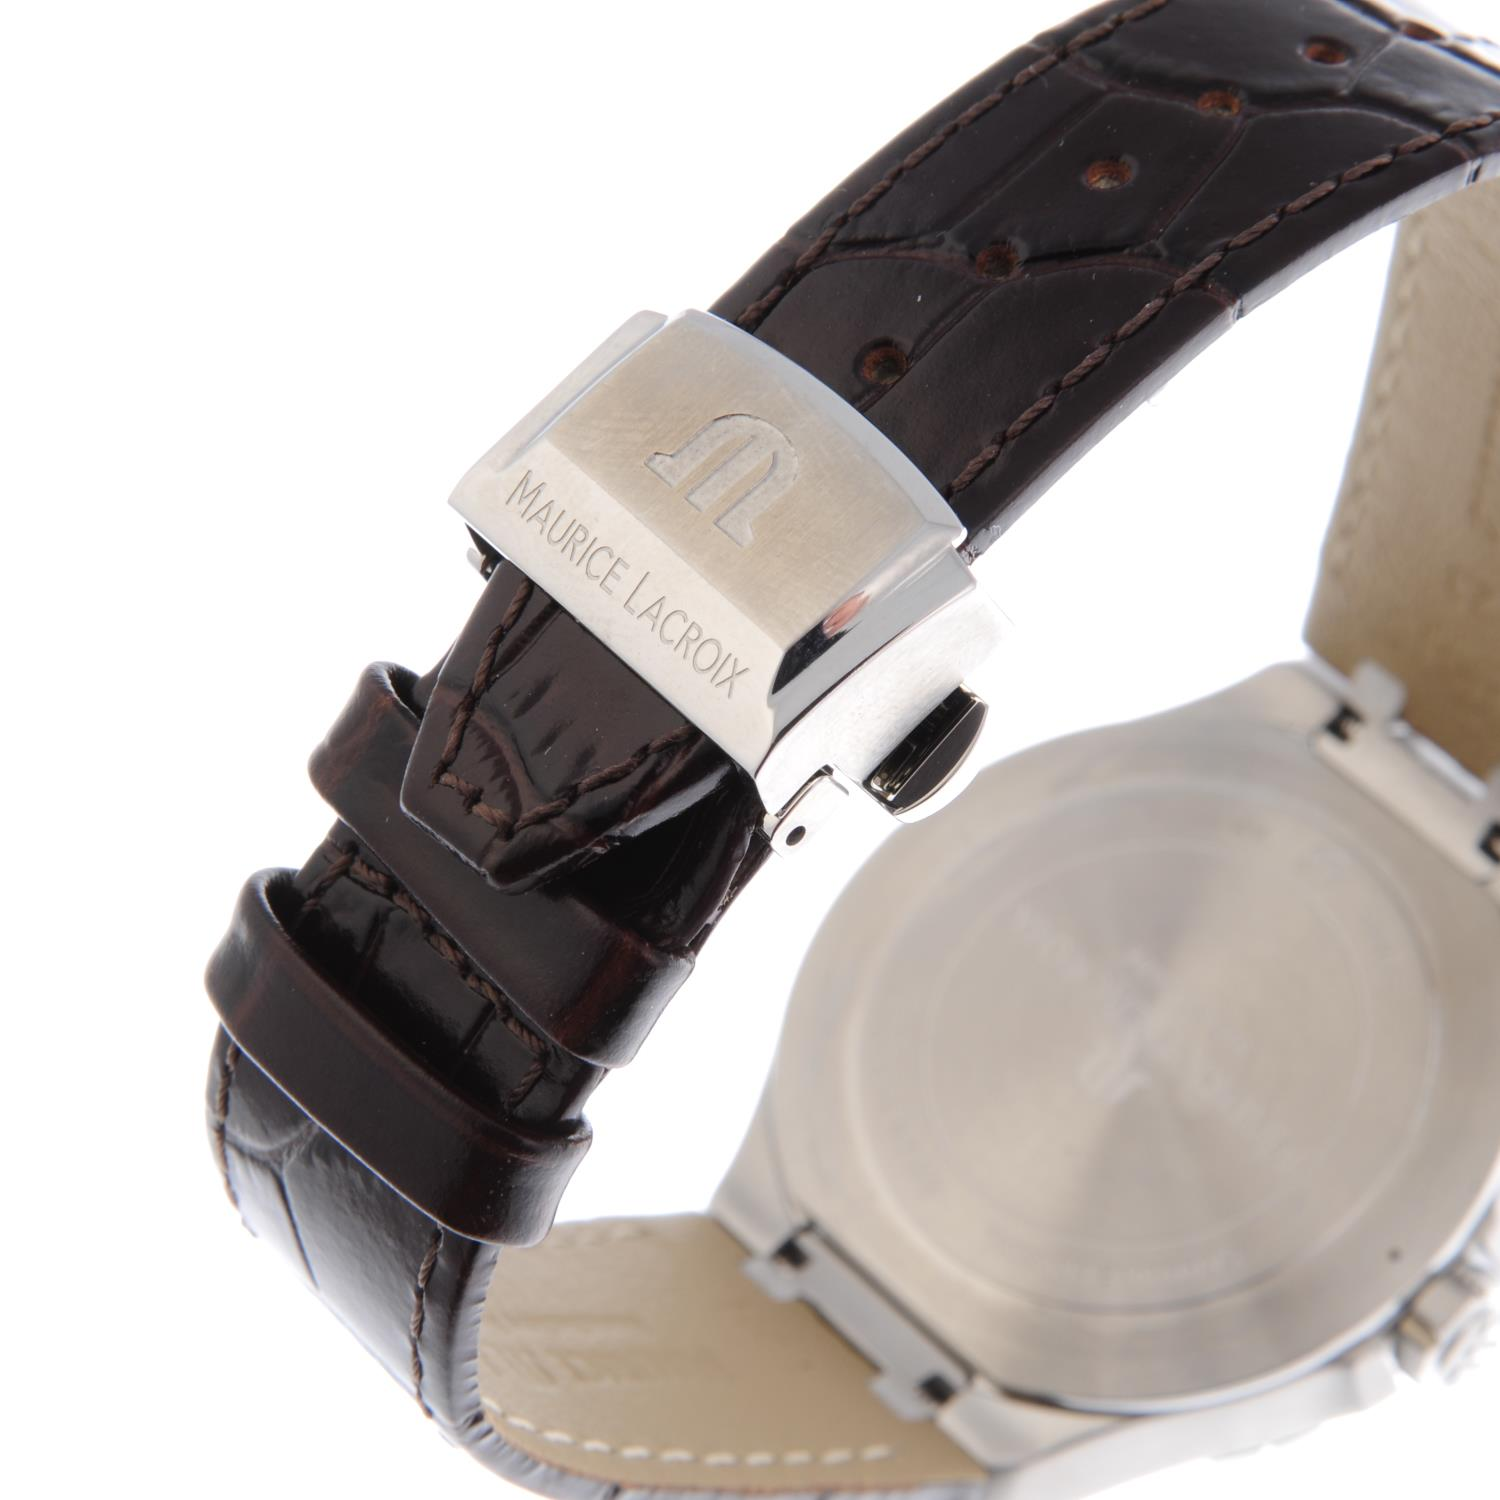 Lot 177 - CURRENT MODEL: MAURICE LACROIX - a gentleman's Aikon wrist watch. Stainless steel case. Reference